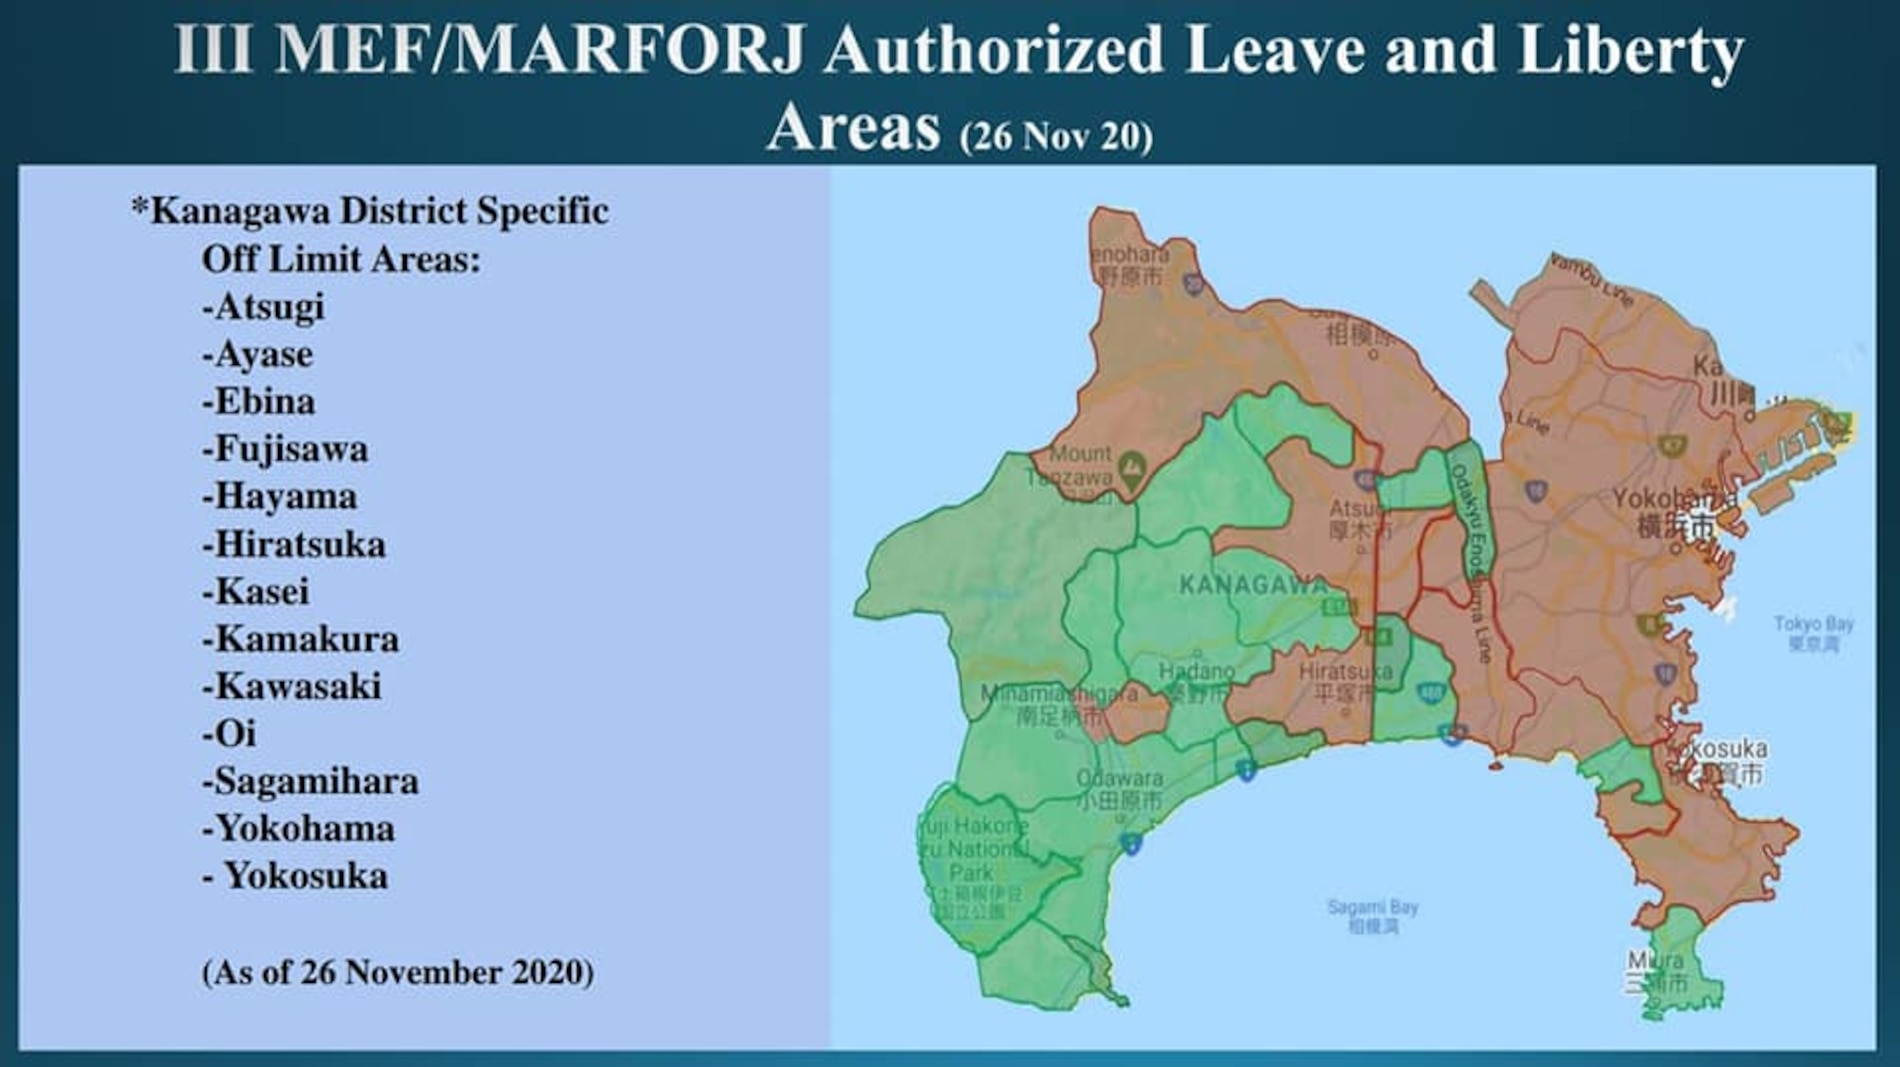 III MEF/MARFORJ Authorized Leave and Liberty Areas